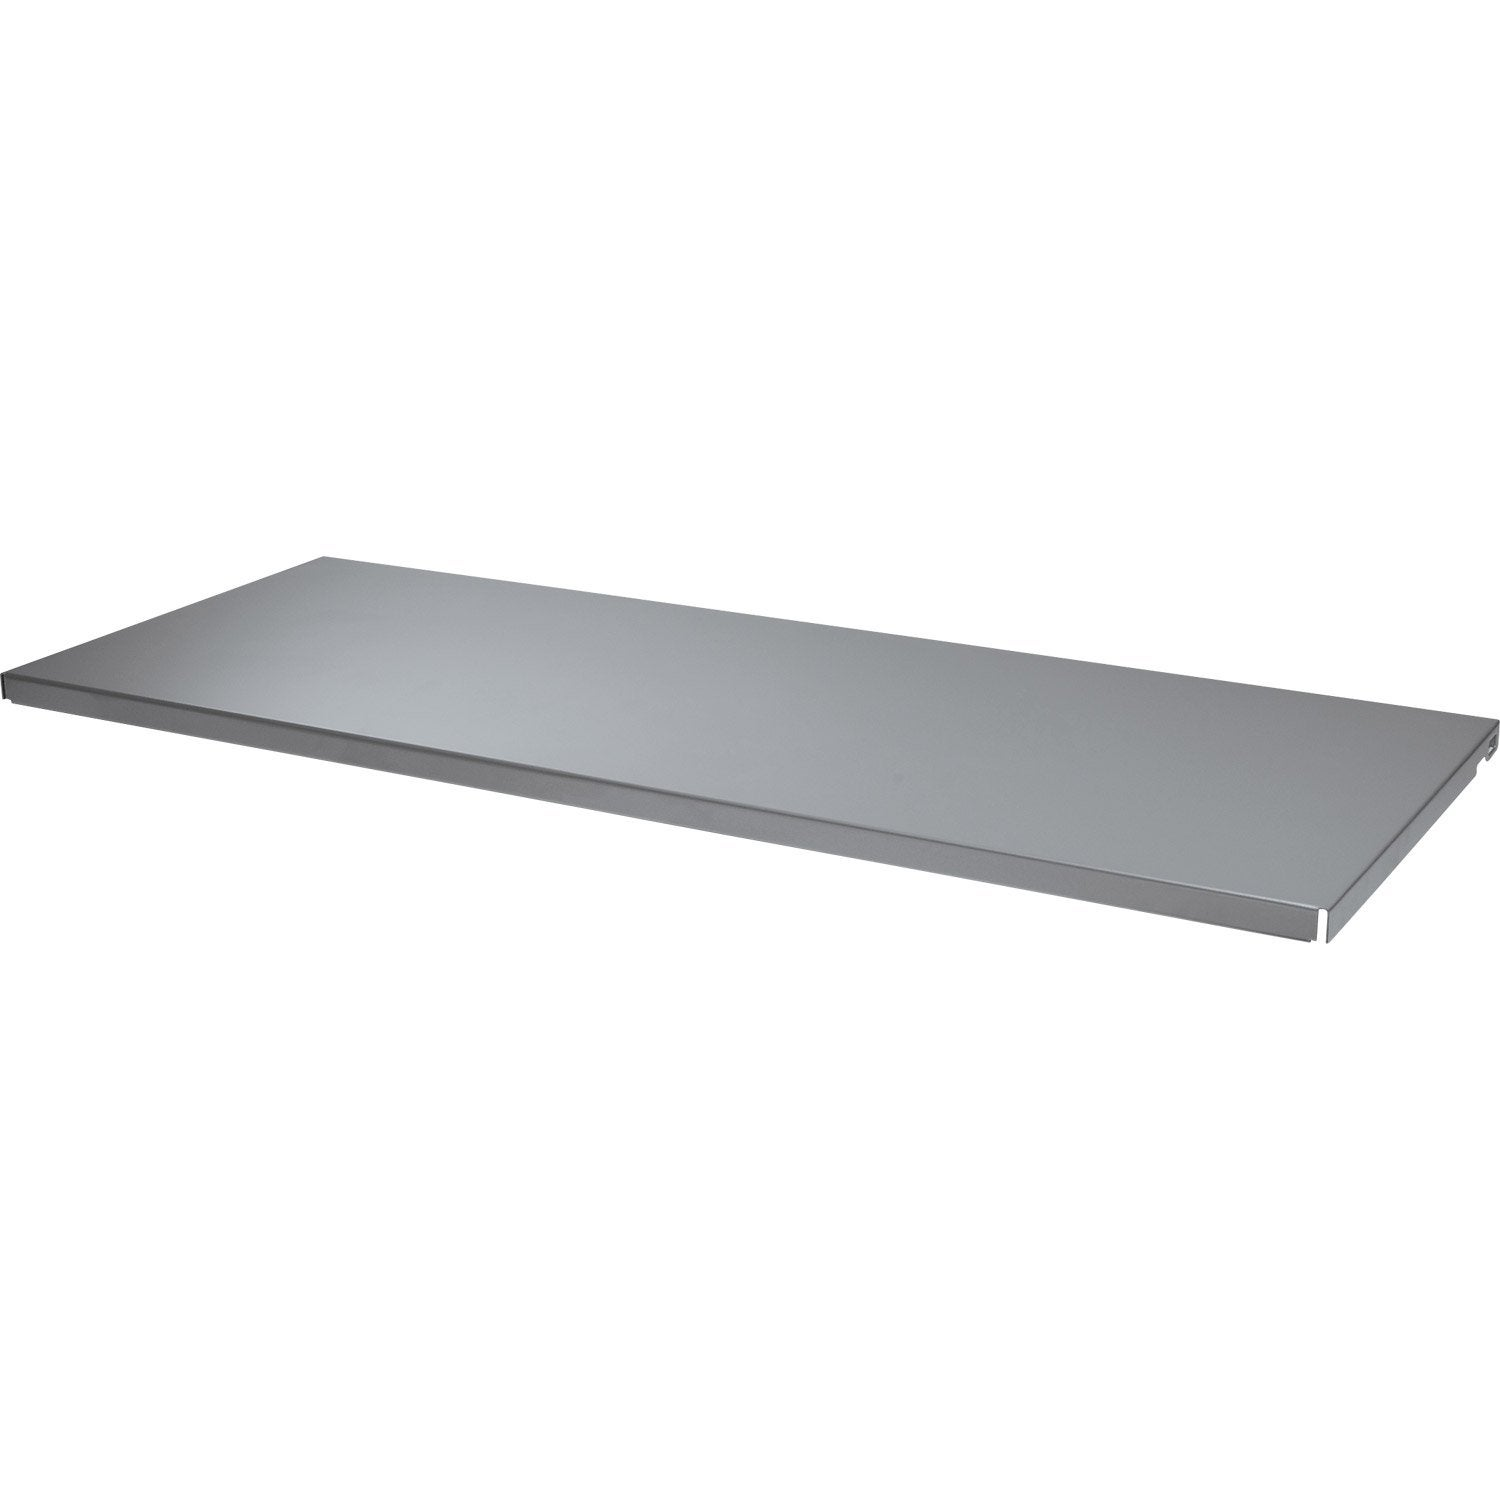 Bordure acier leroy merlin bordure planter aspect rouille acier galvanis gris h latest bordure - Plaque acier galvanise leroy merlin ...